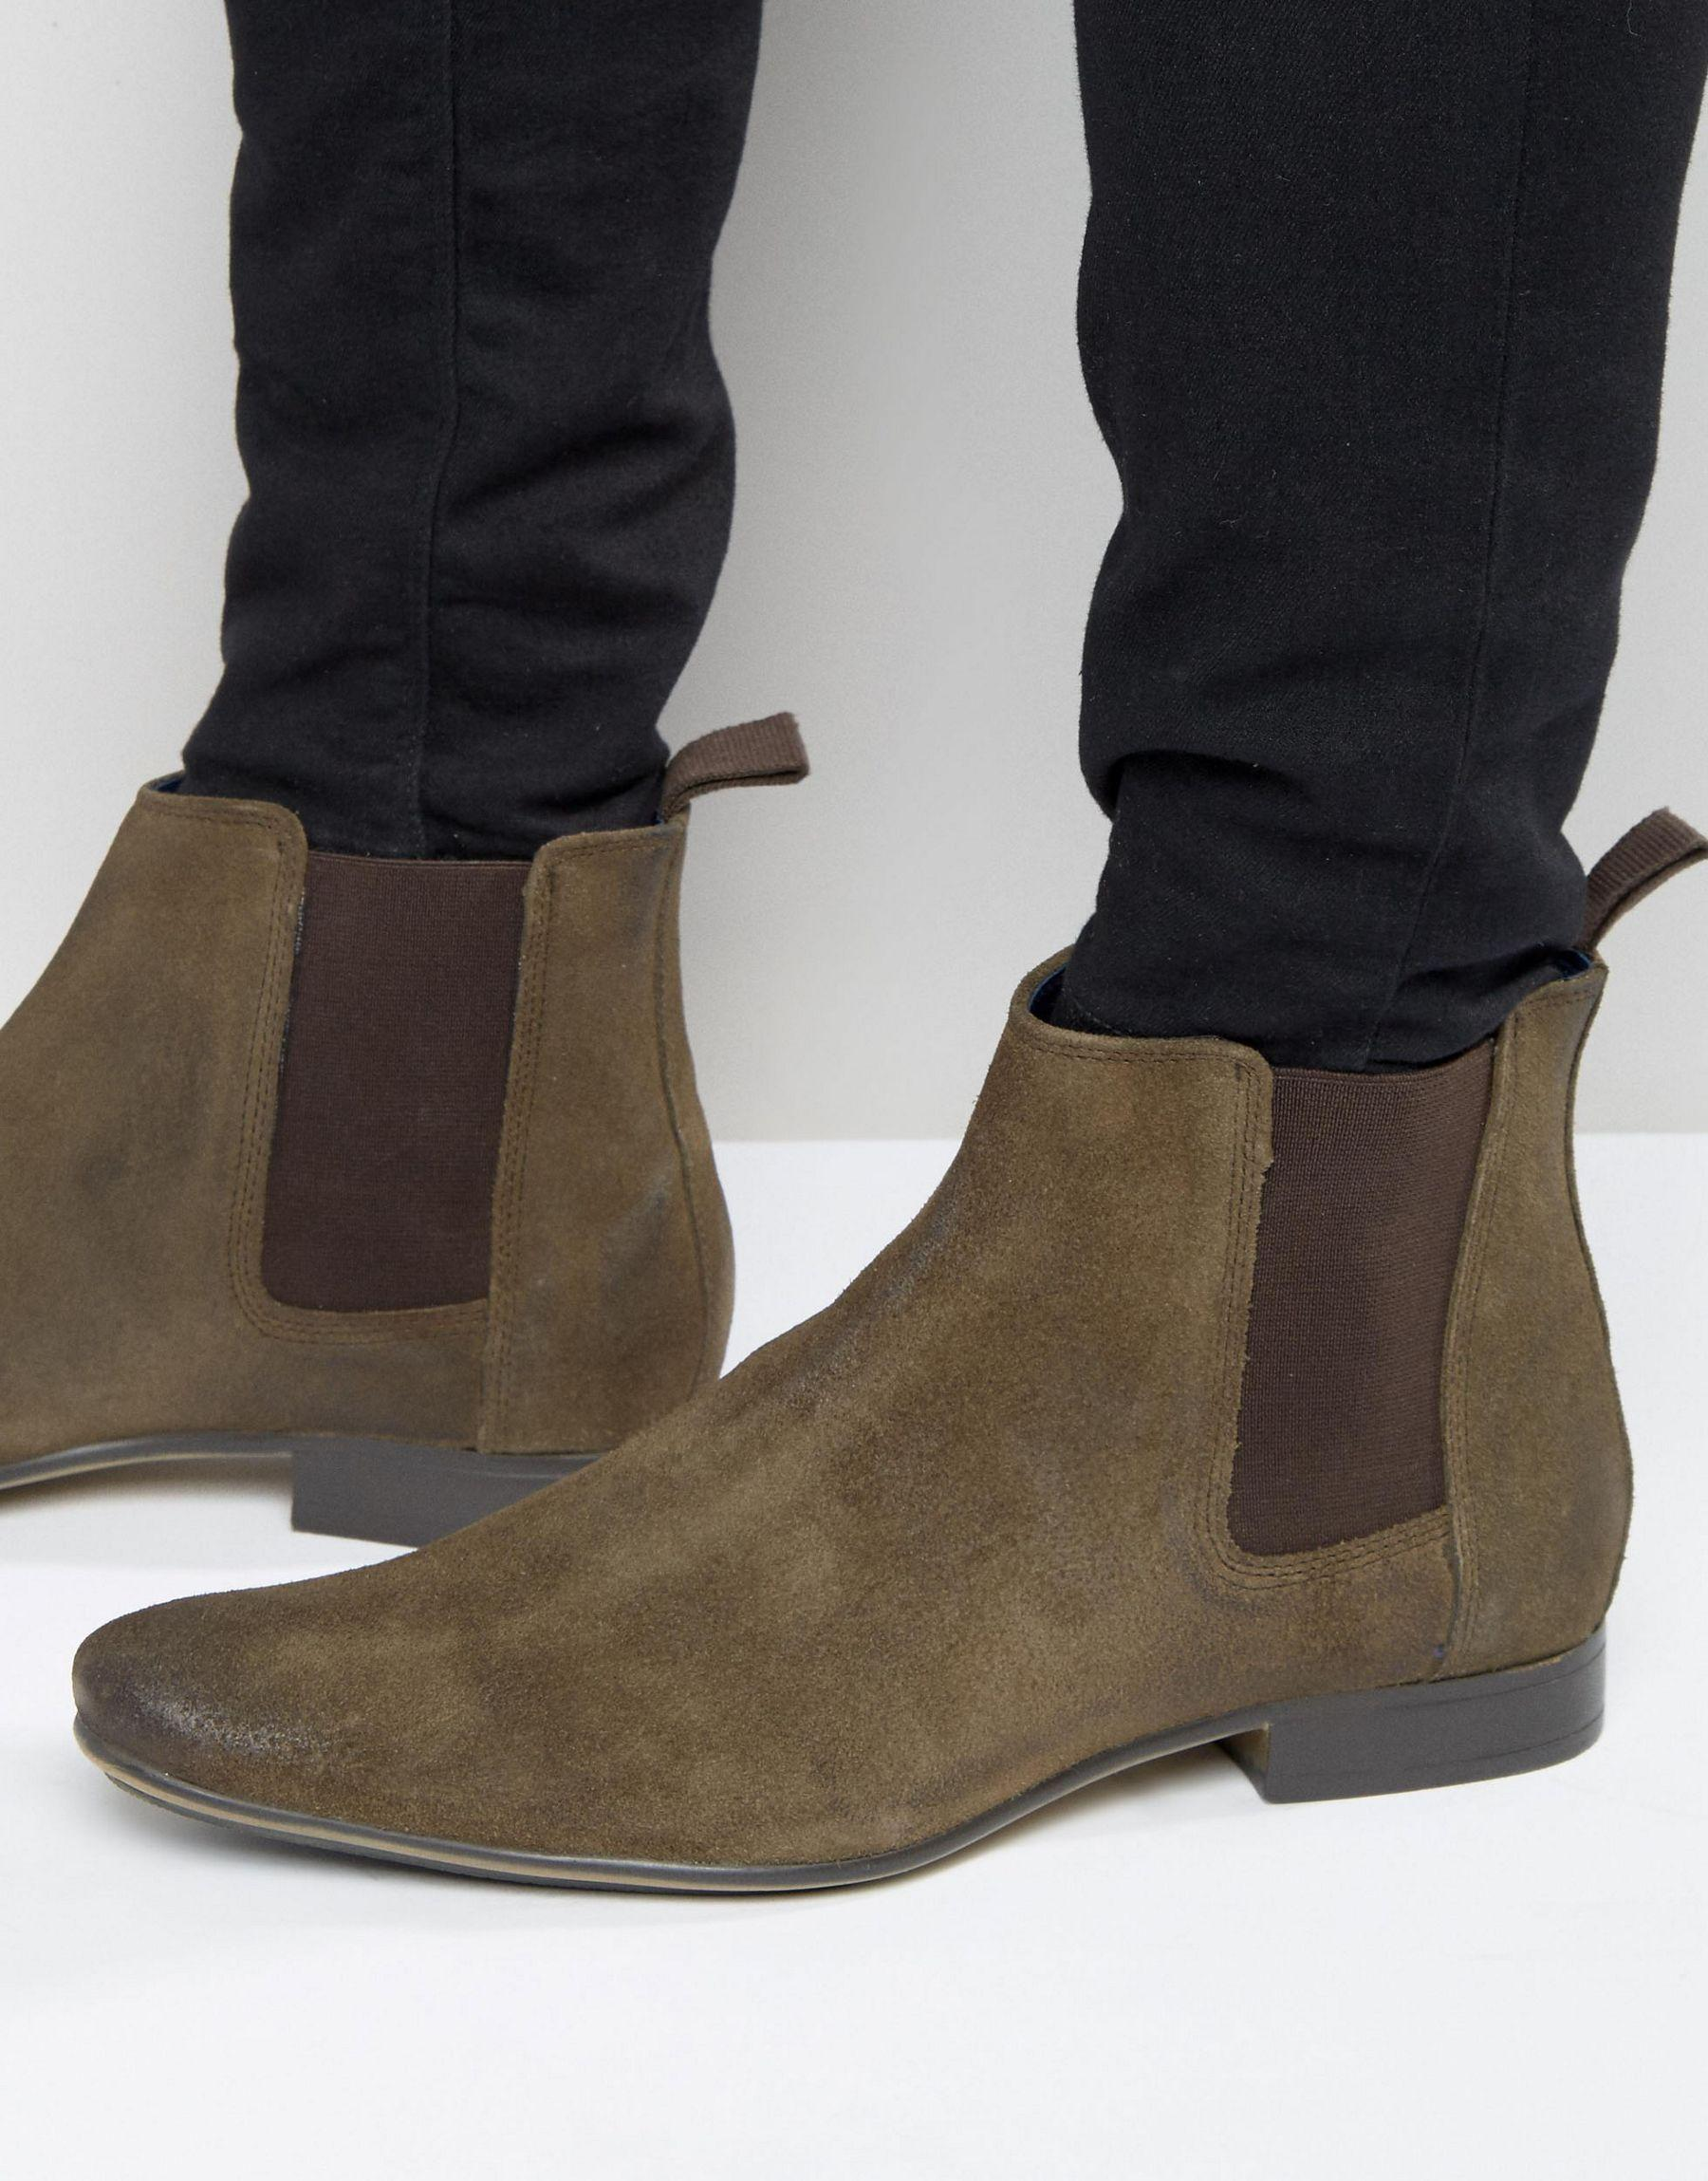 frank wright chelsea boots in brown leather in brown for